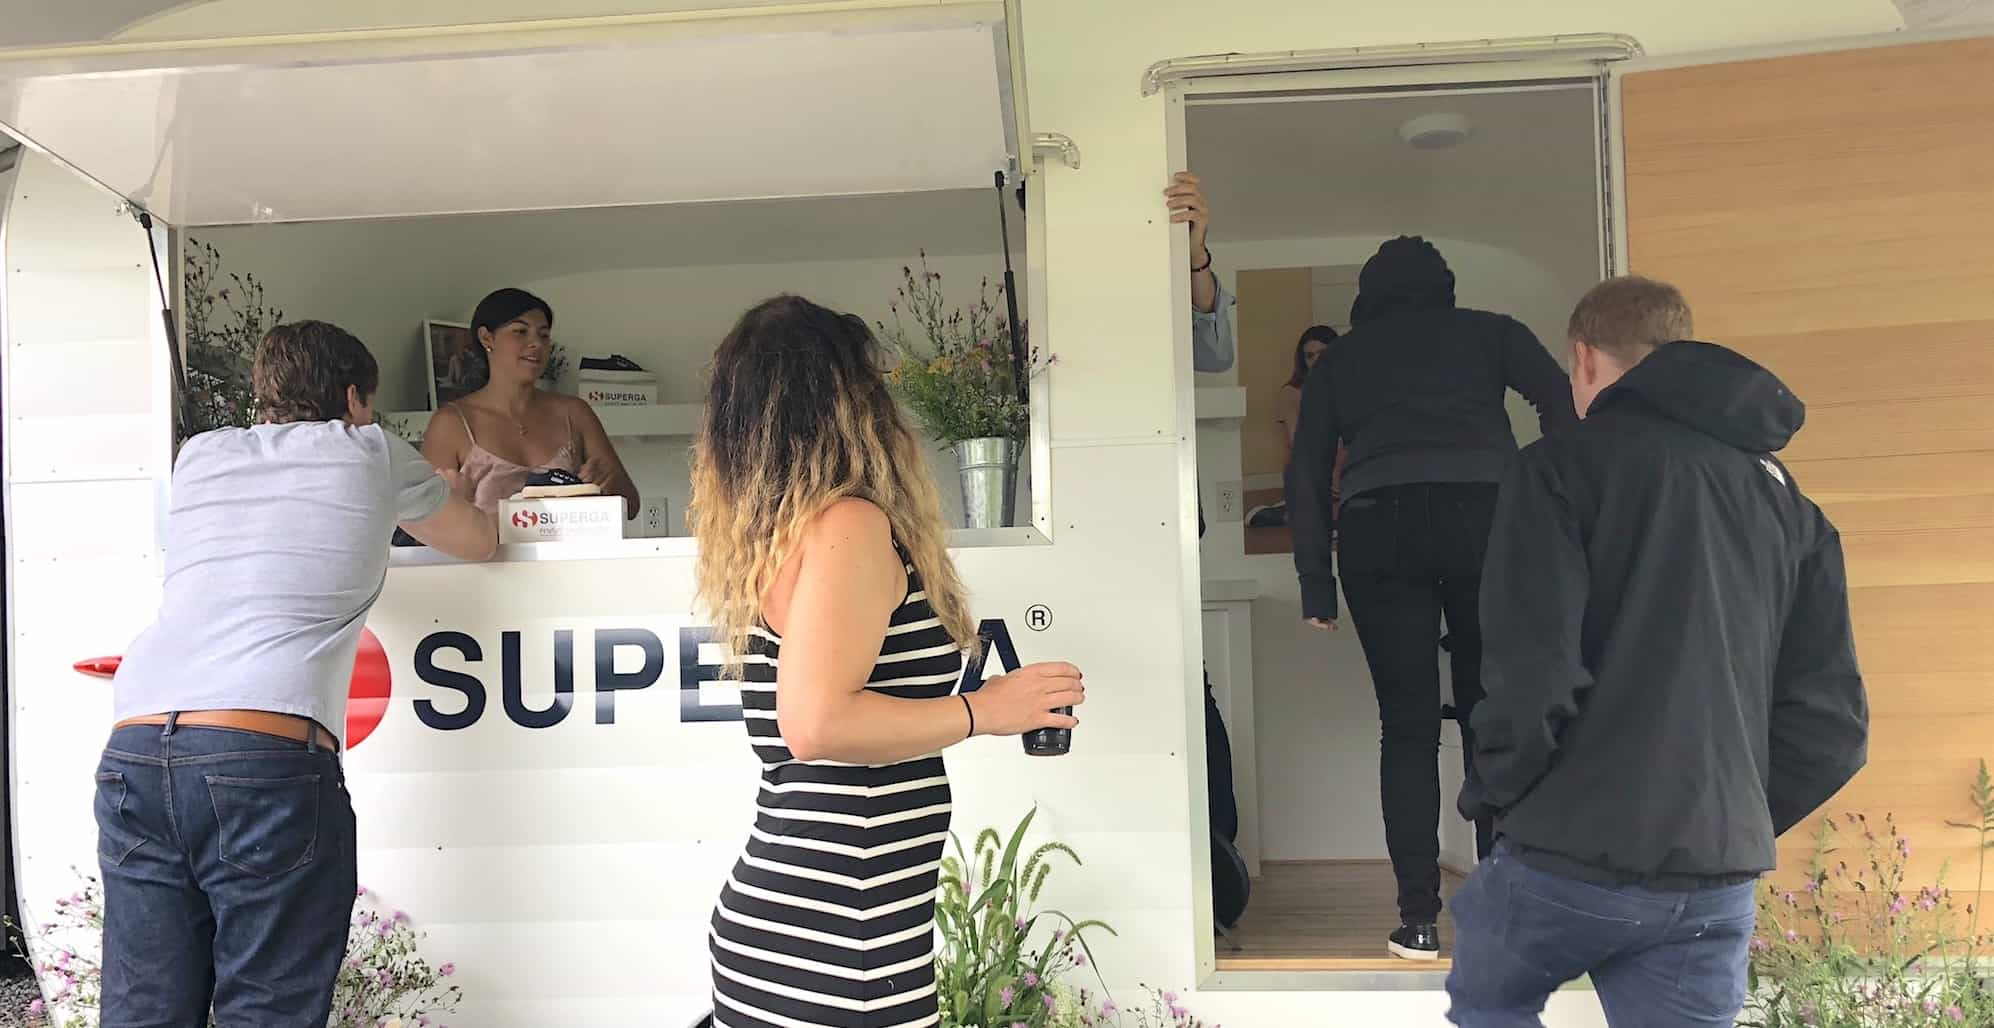 Superga Popup Shop Camper + Embroidery Popup Shop - Hamptons, New York